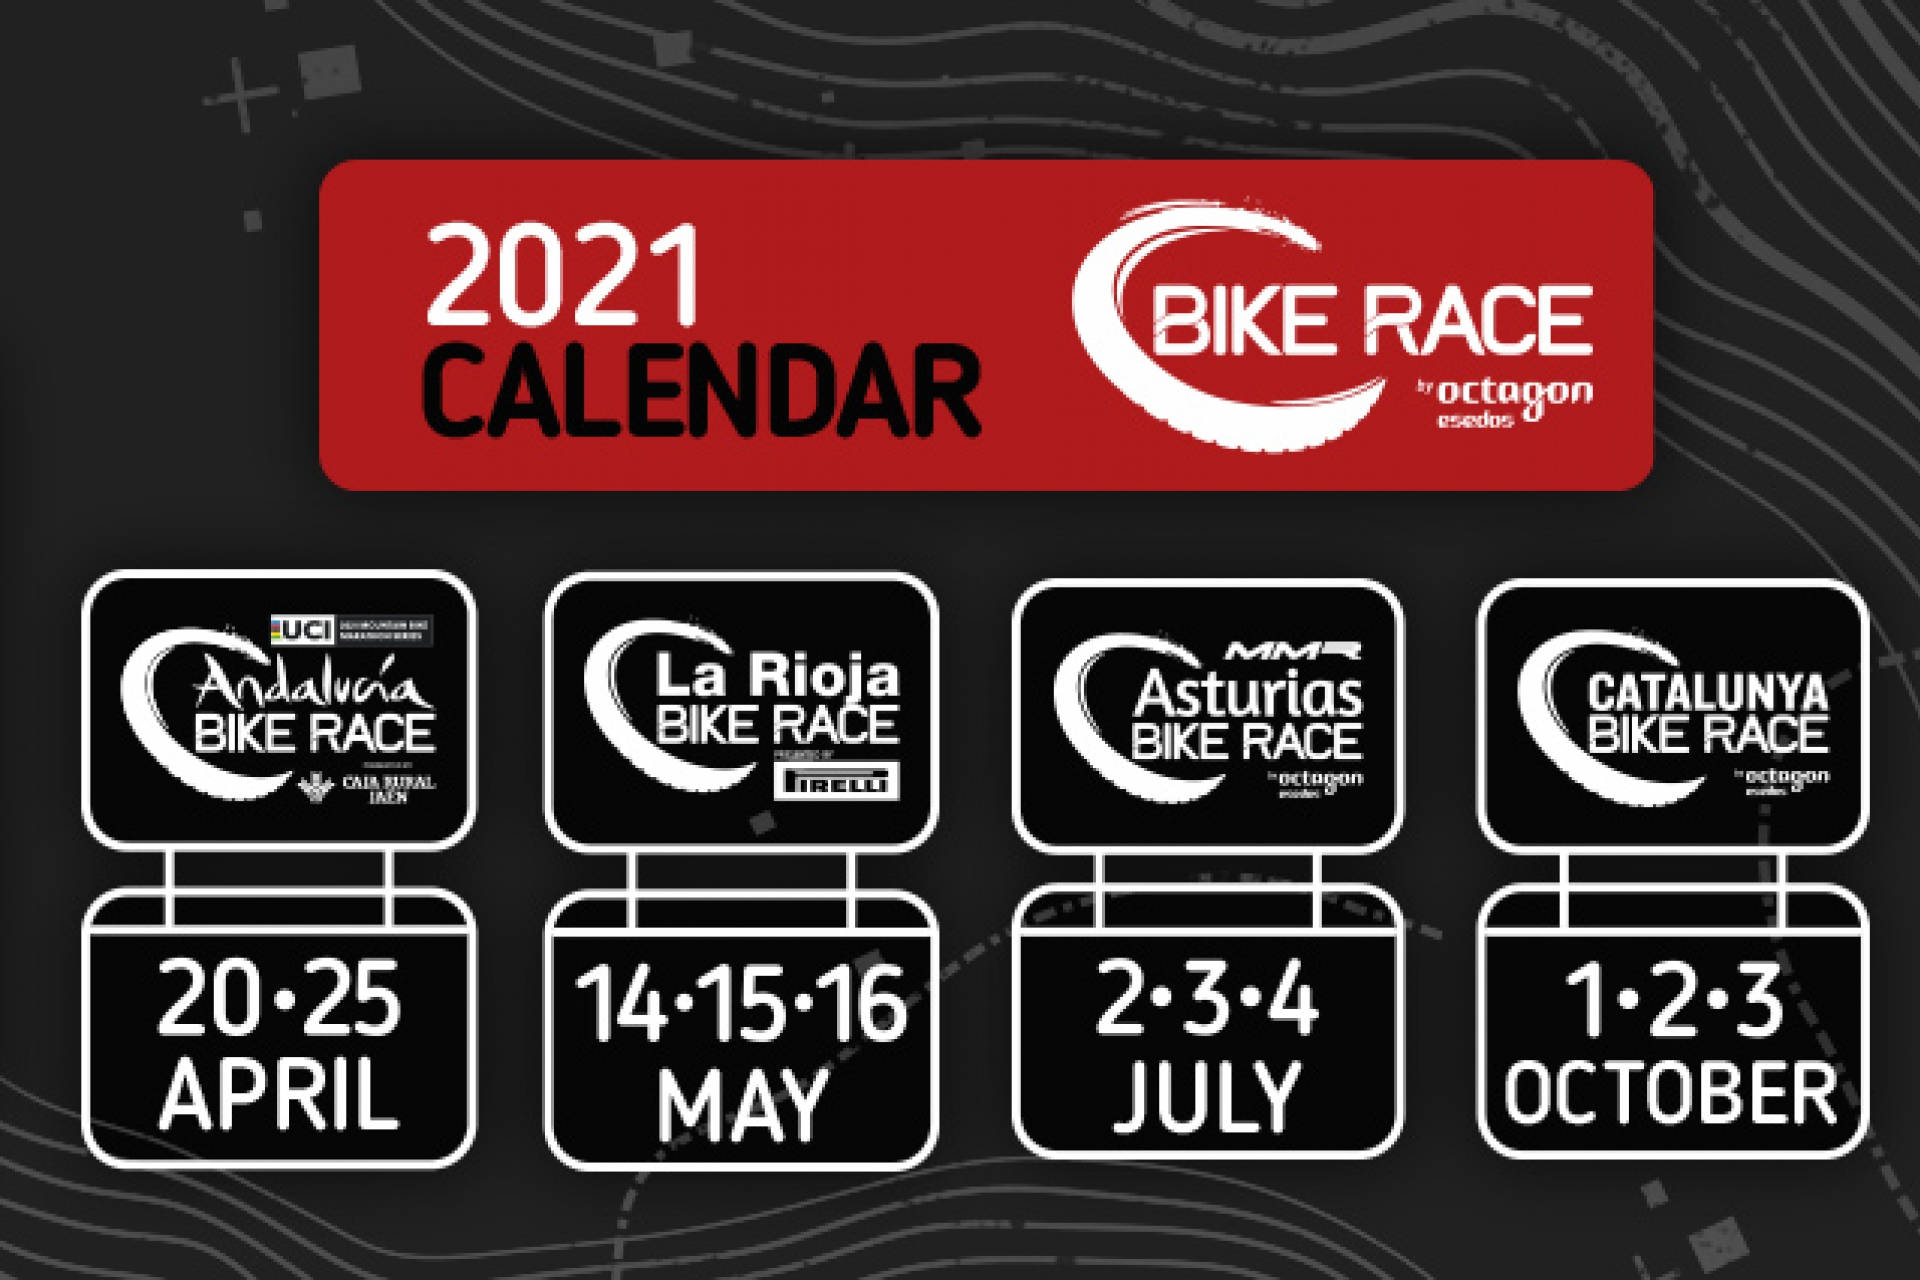 Presentem el calendario Bike Race by Octagon Esedos per al 2021